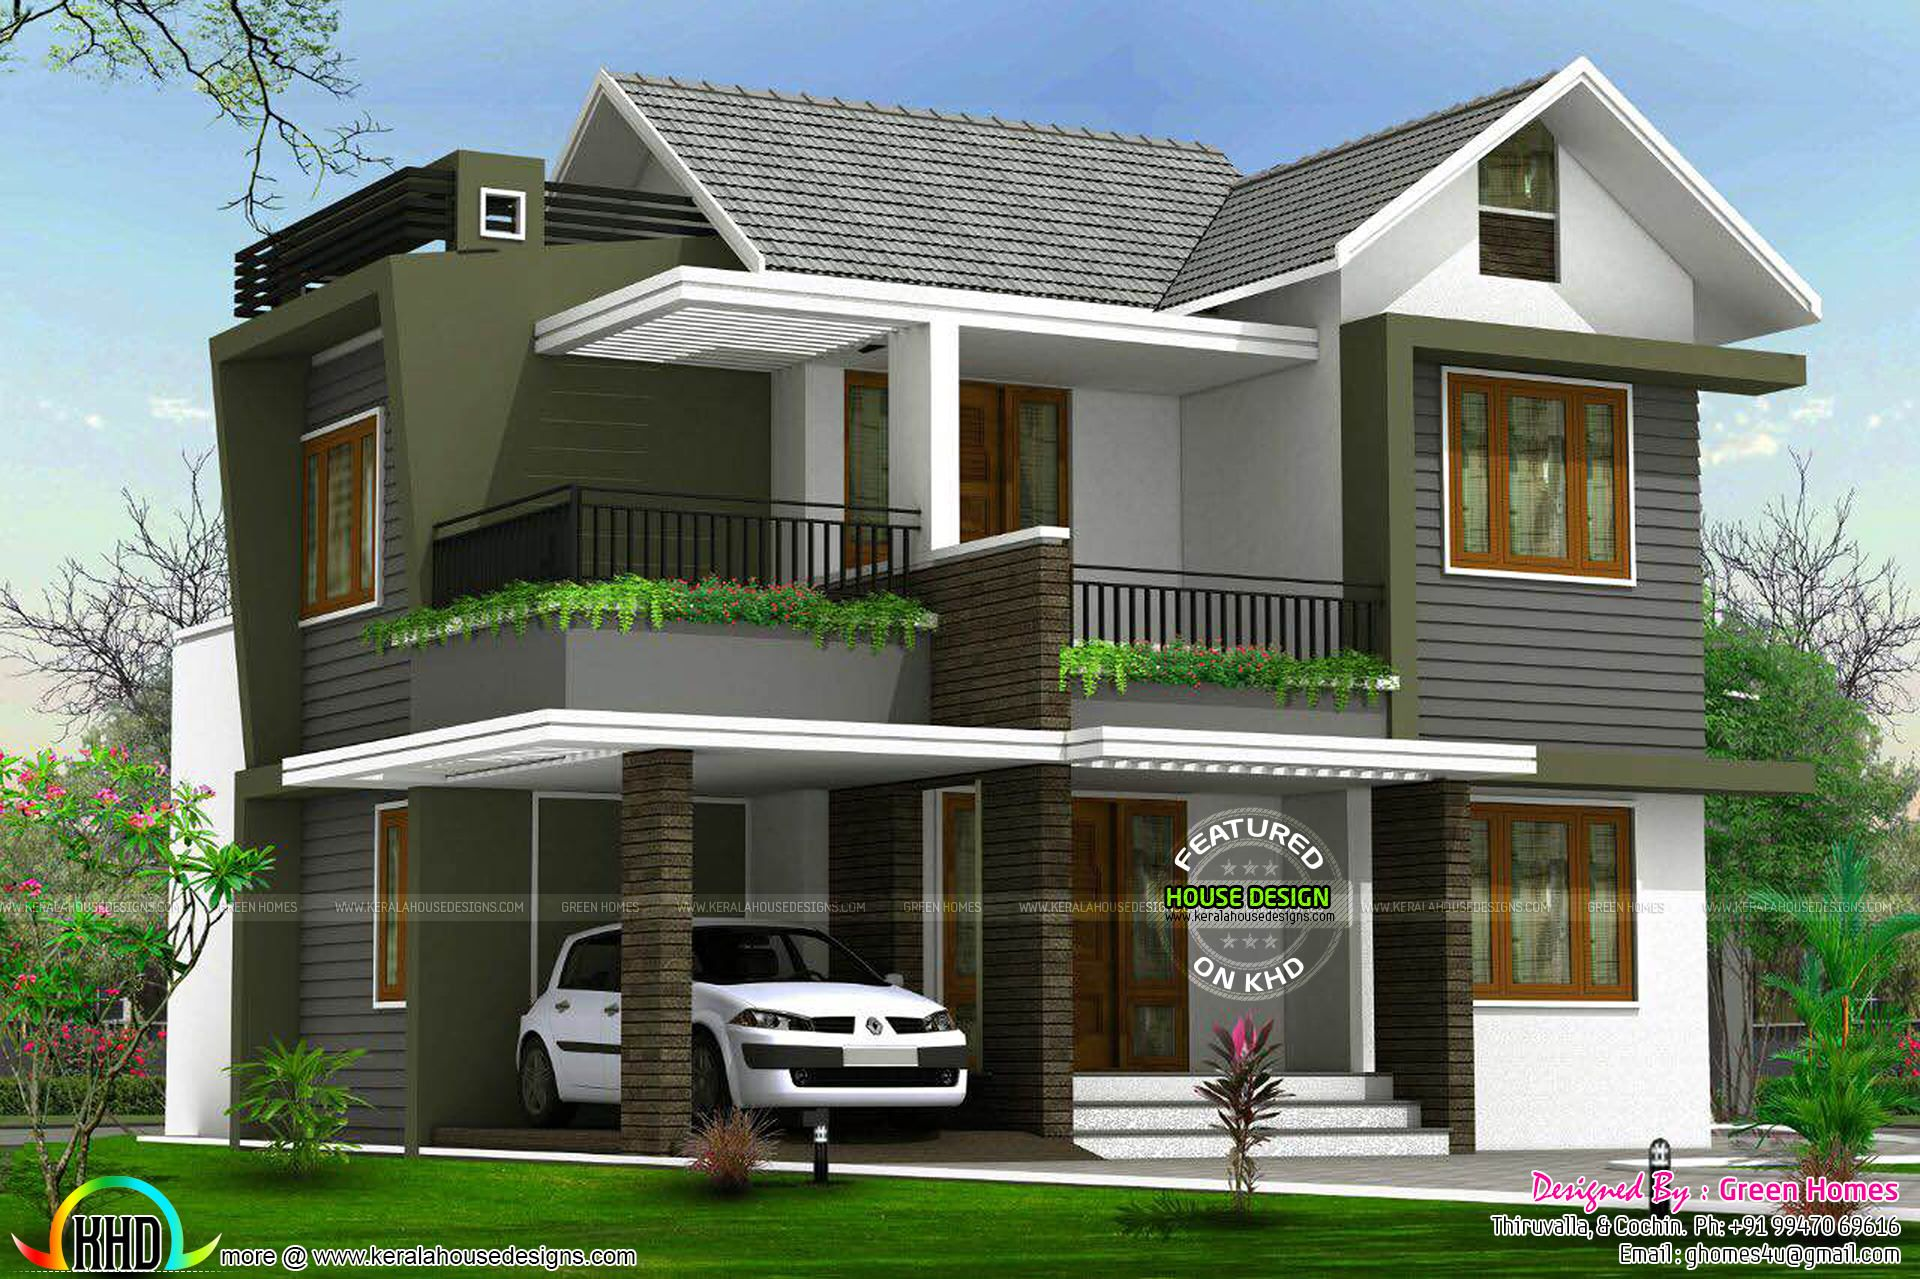 4BHK floor plan and elevation in 5 cent Kerala house